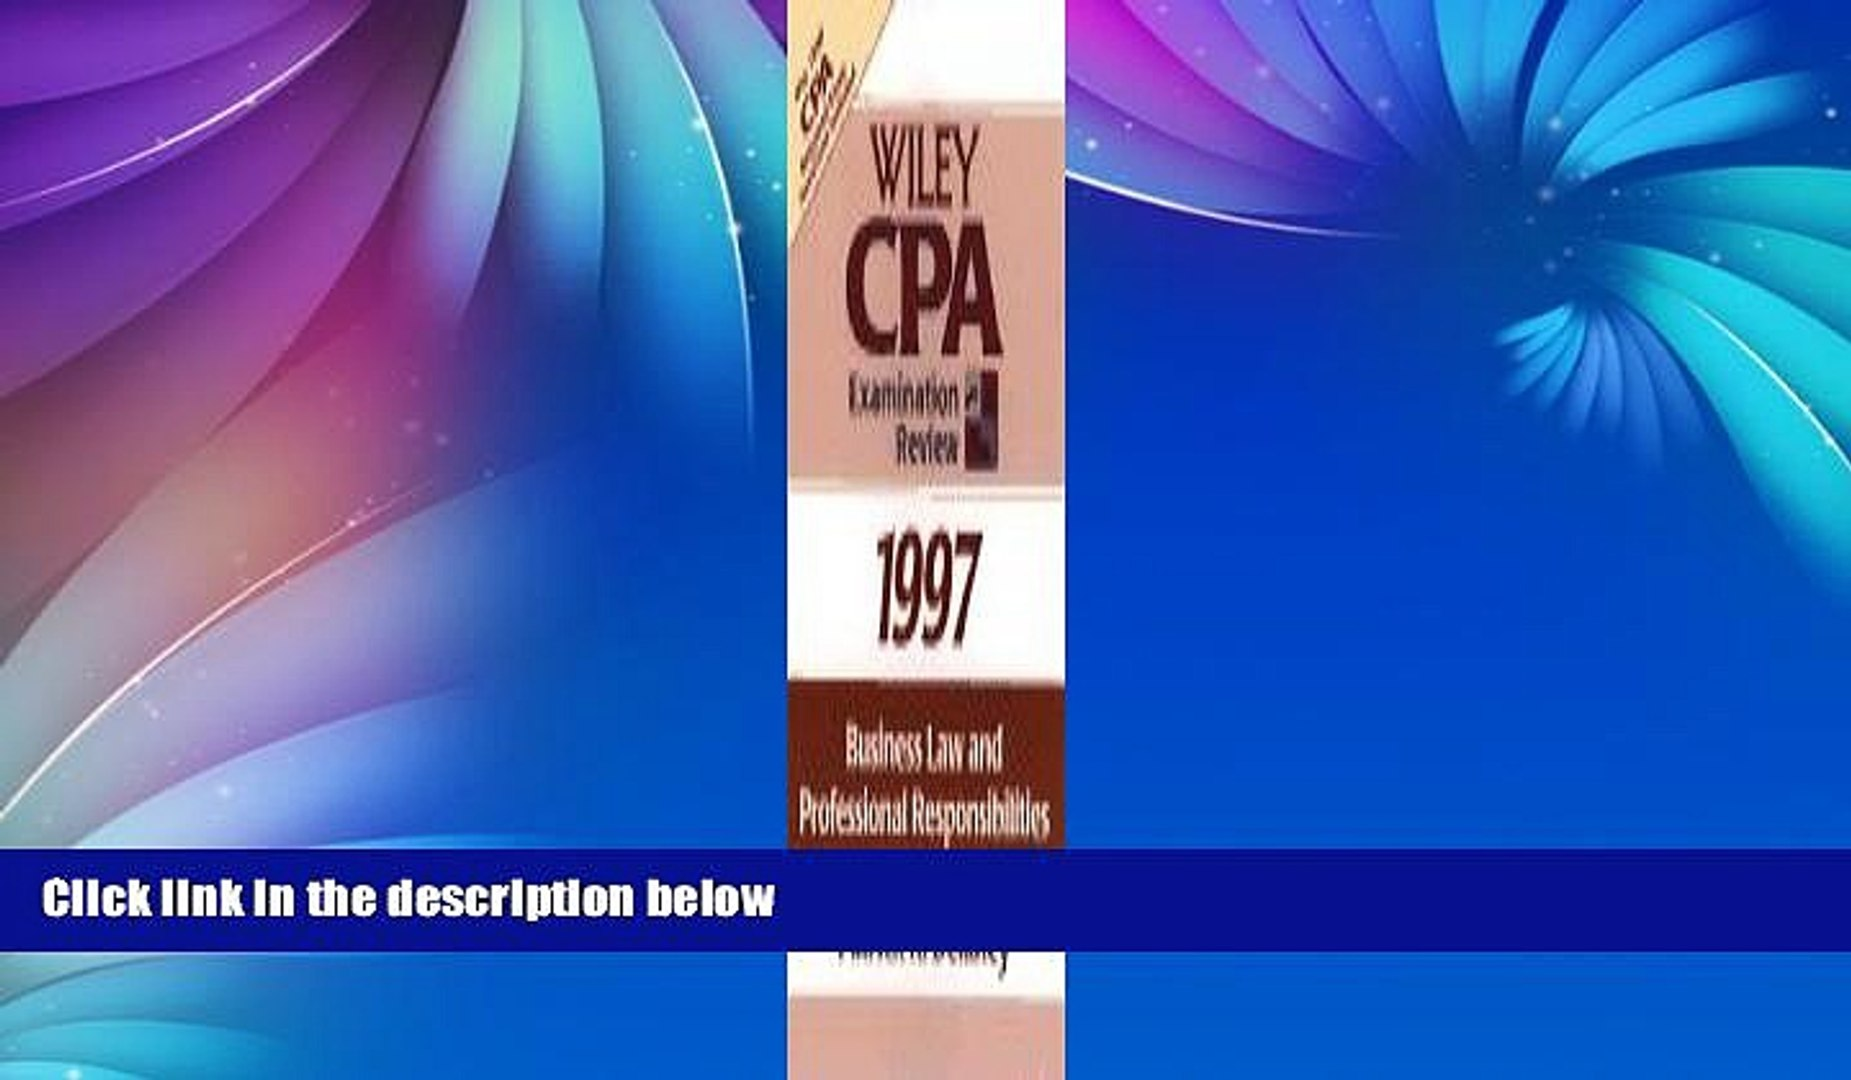 Pre Order Business Law and Professional Responsibilities 1997 (Wiley Cpa Examination Review 1997)